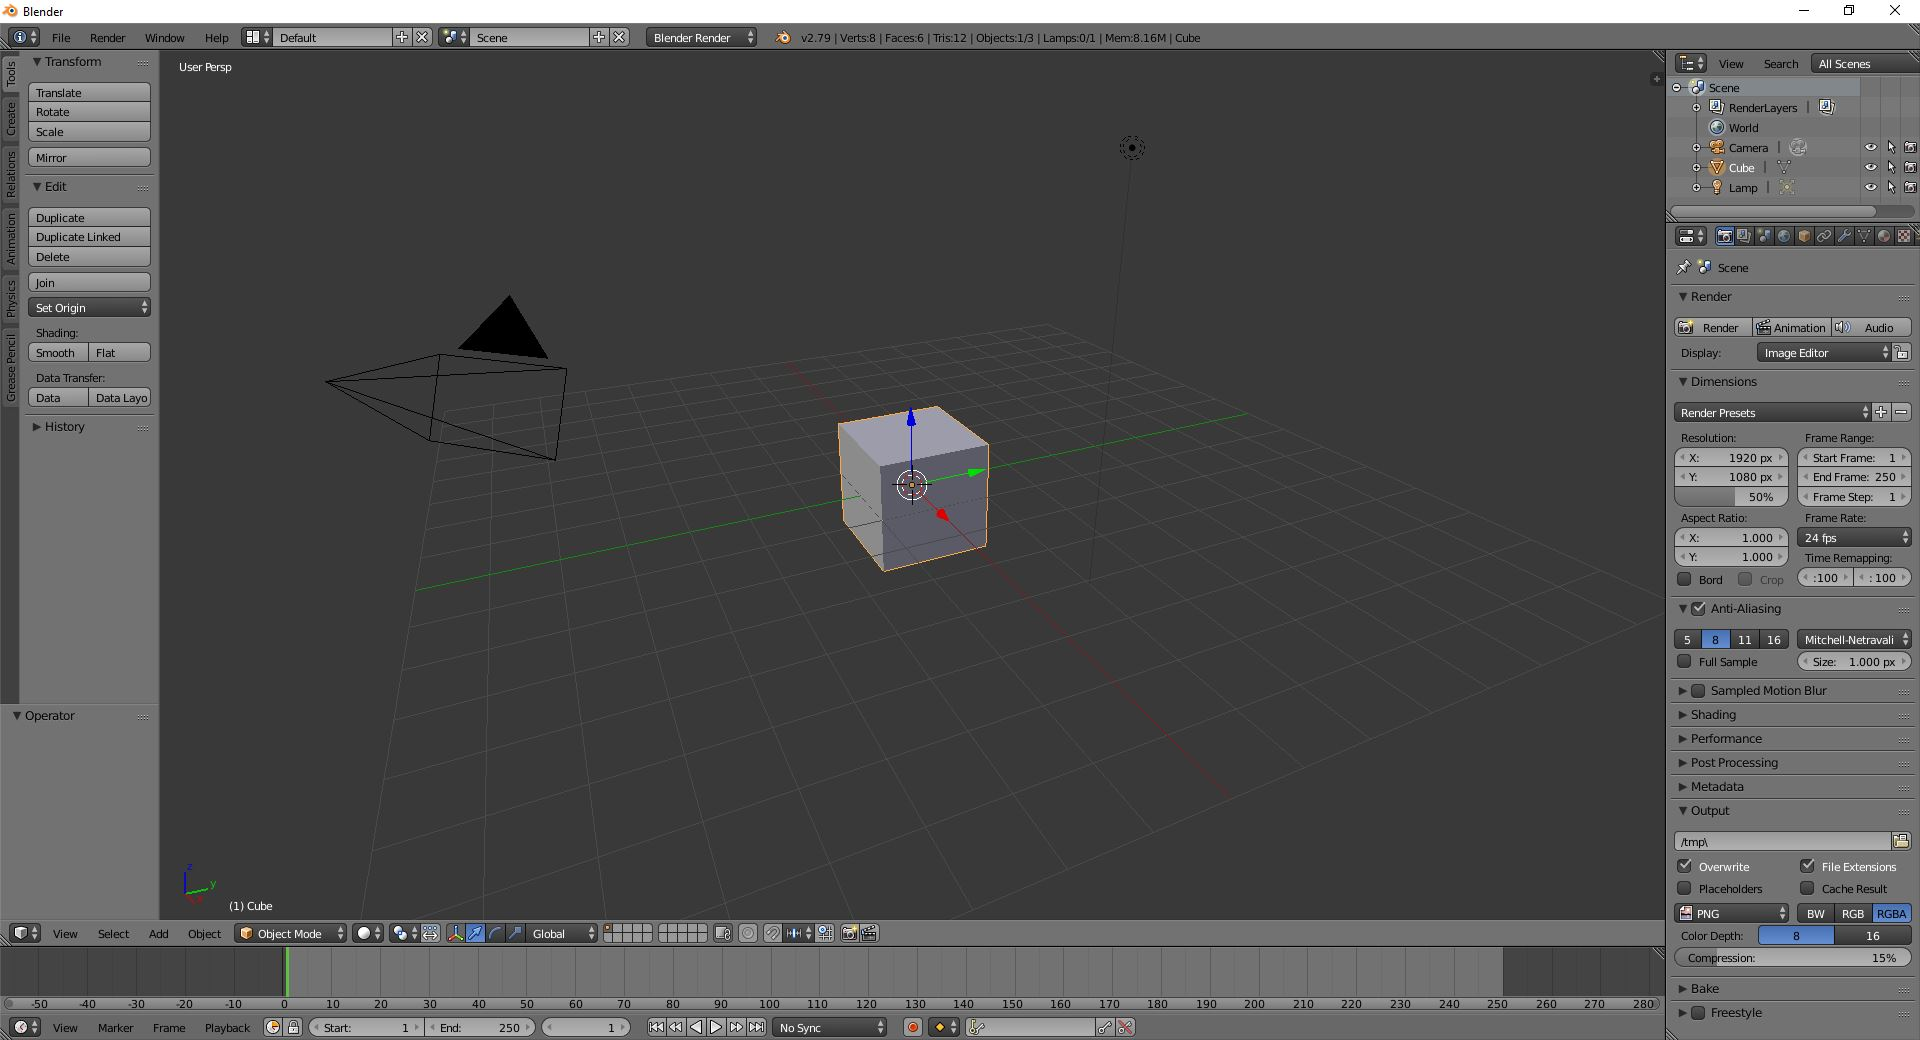 Blender Overview: Free 3D Modeling and VFX Software